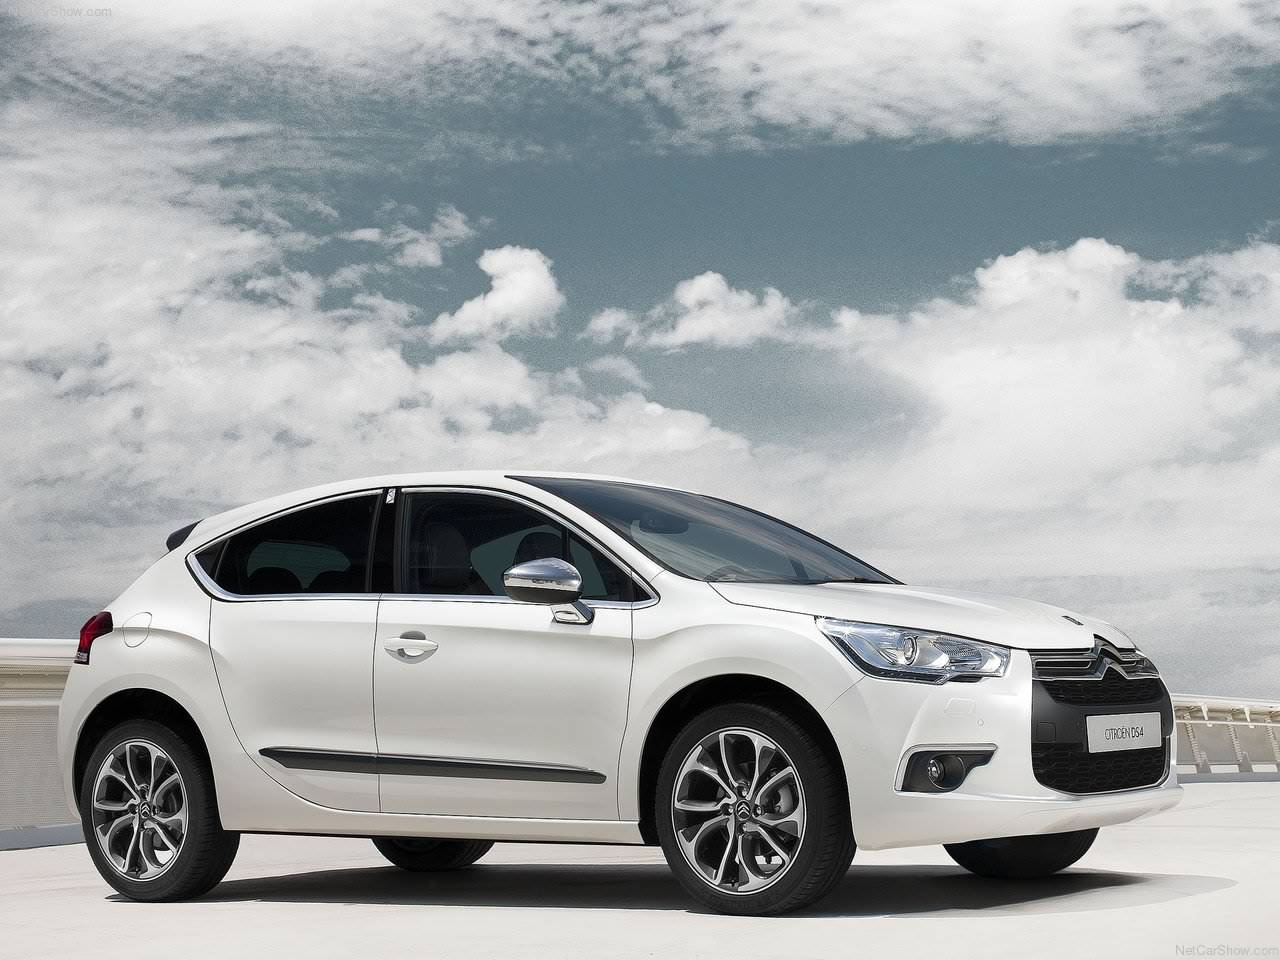 https://1.bp.blogspot.com/_xhqjRo6NERQ/TP6tSdPfgJI/AAAAAAAAJlY/hXdIssEmP94/s1600/Citroen-DS4_2012_1280x960_wallpaper_01.jpg